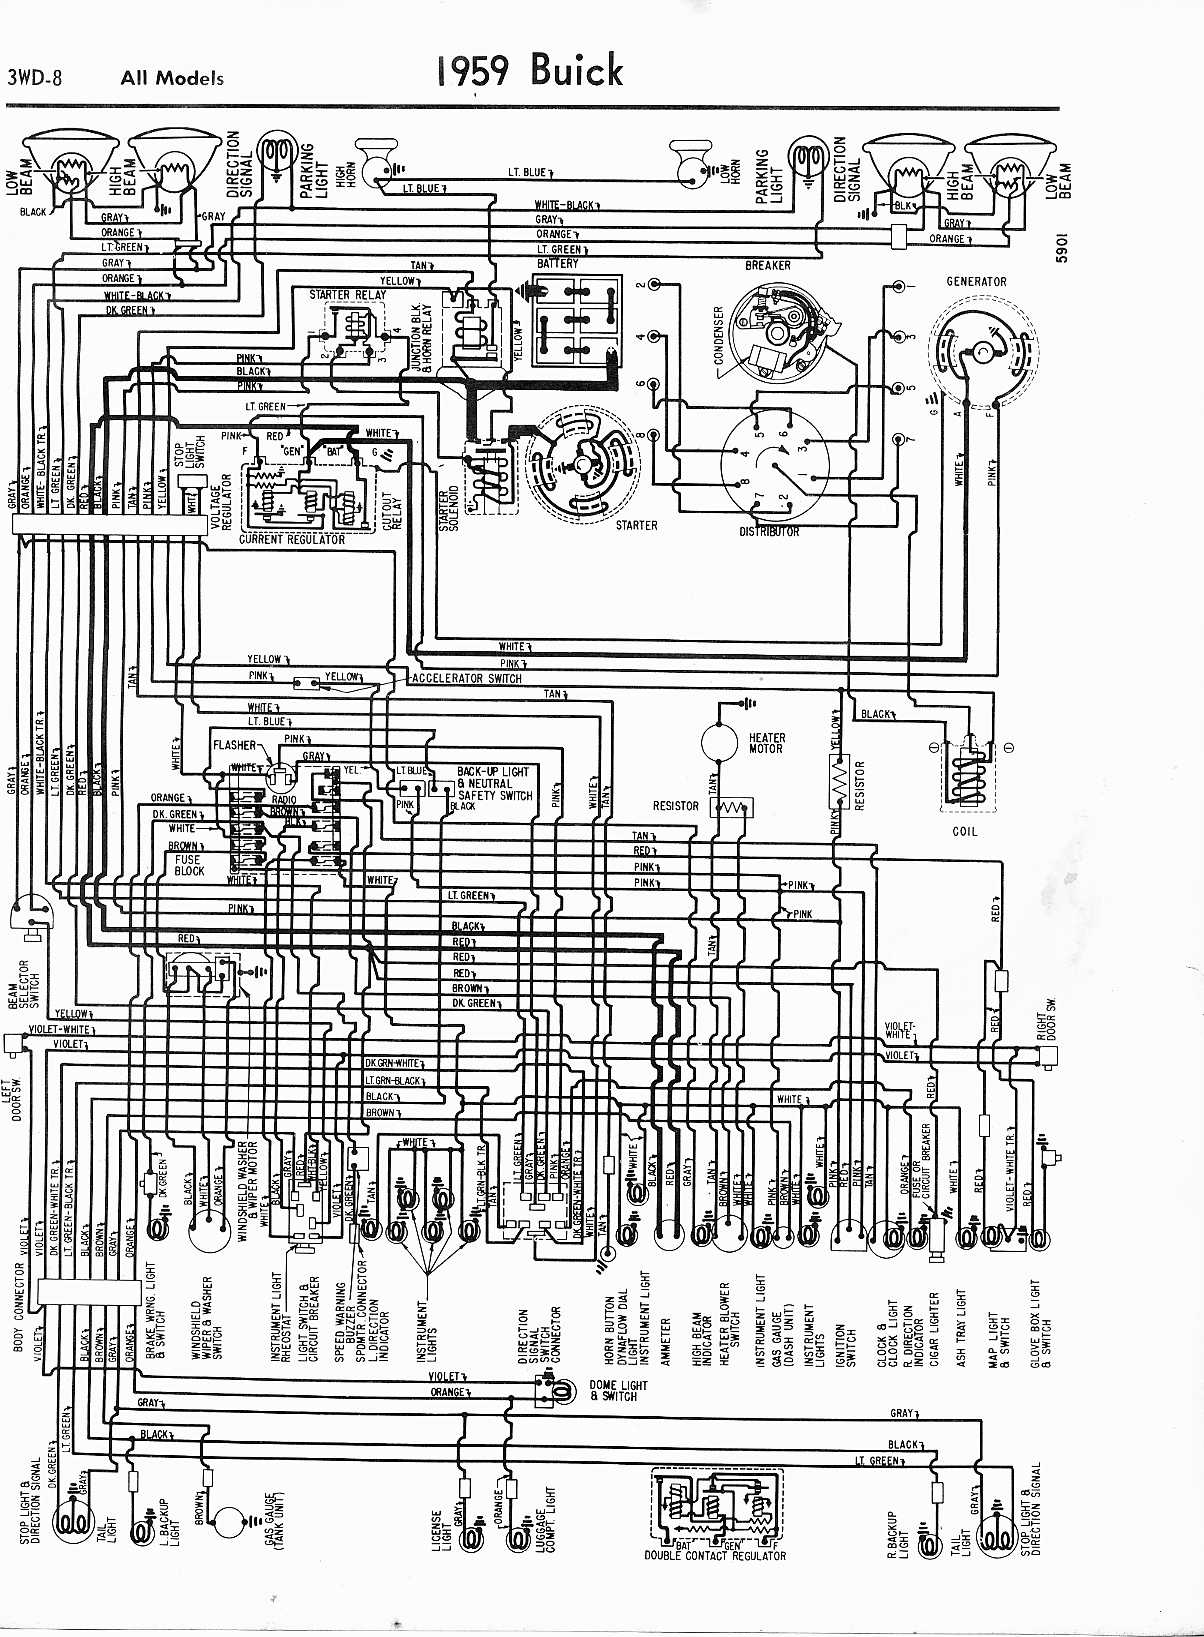 hight resolution of buick wiring diagrams 1957 1965 rh oldcarmanualproject com 1960 buick wiring diagram 1960 buick lesabre wiring diagram